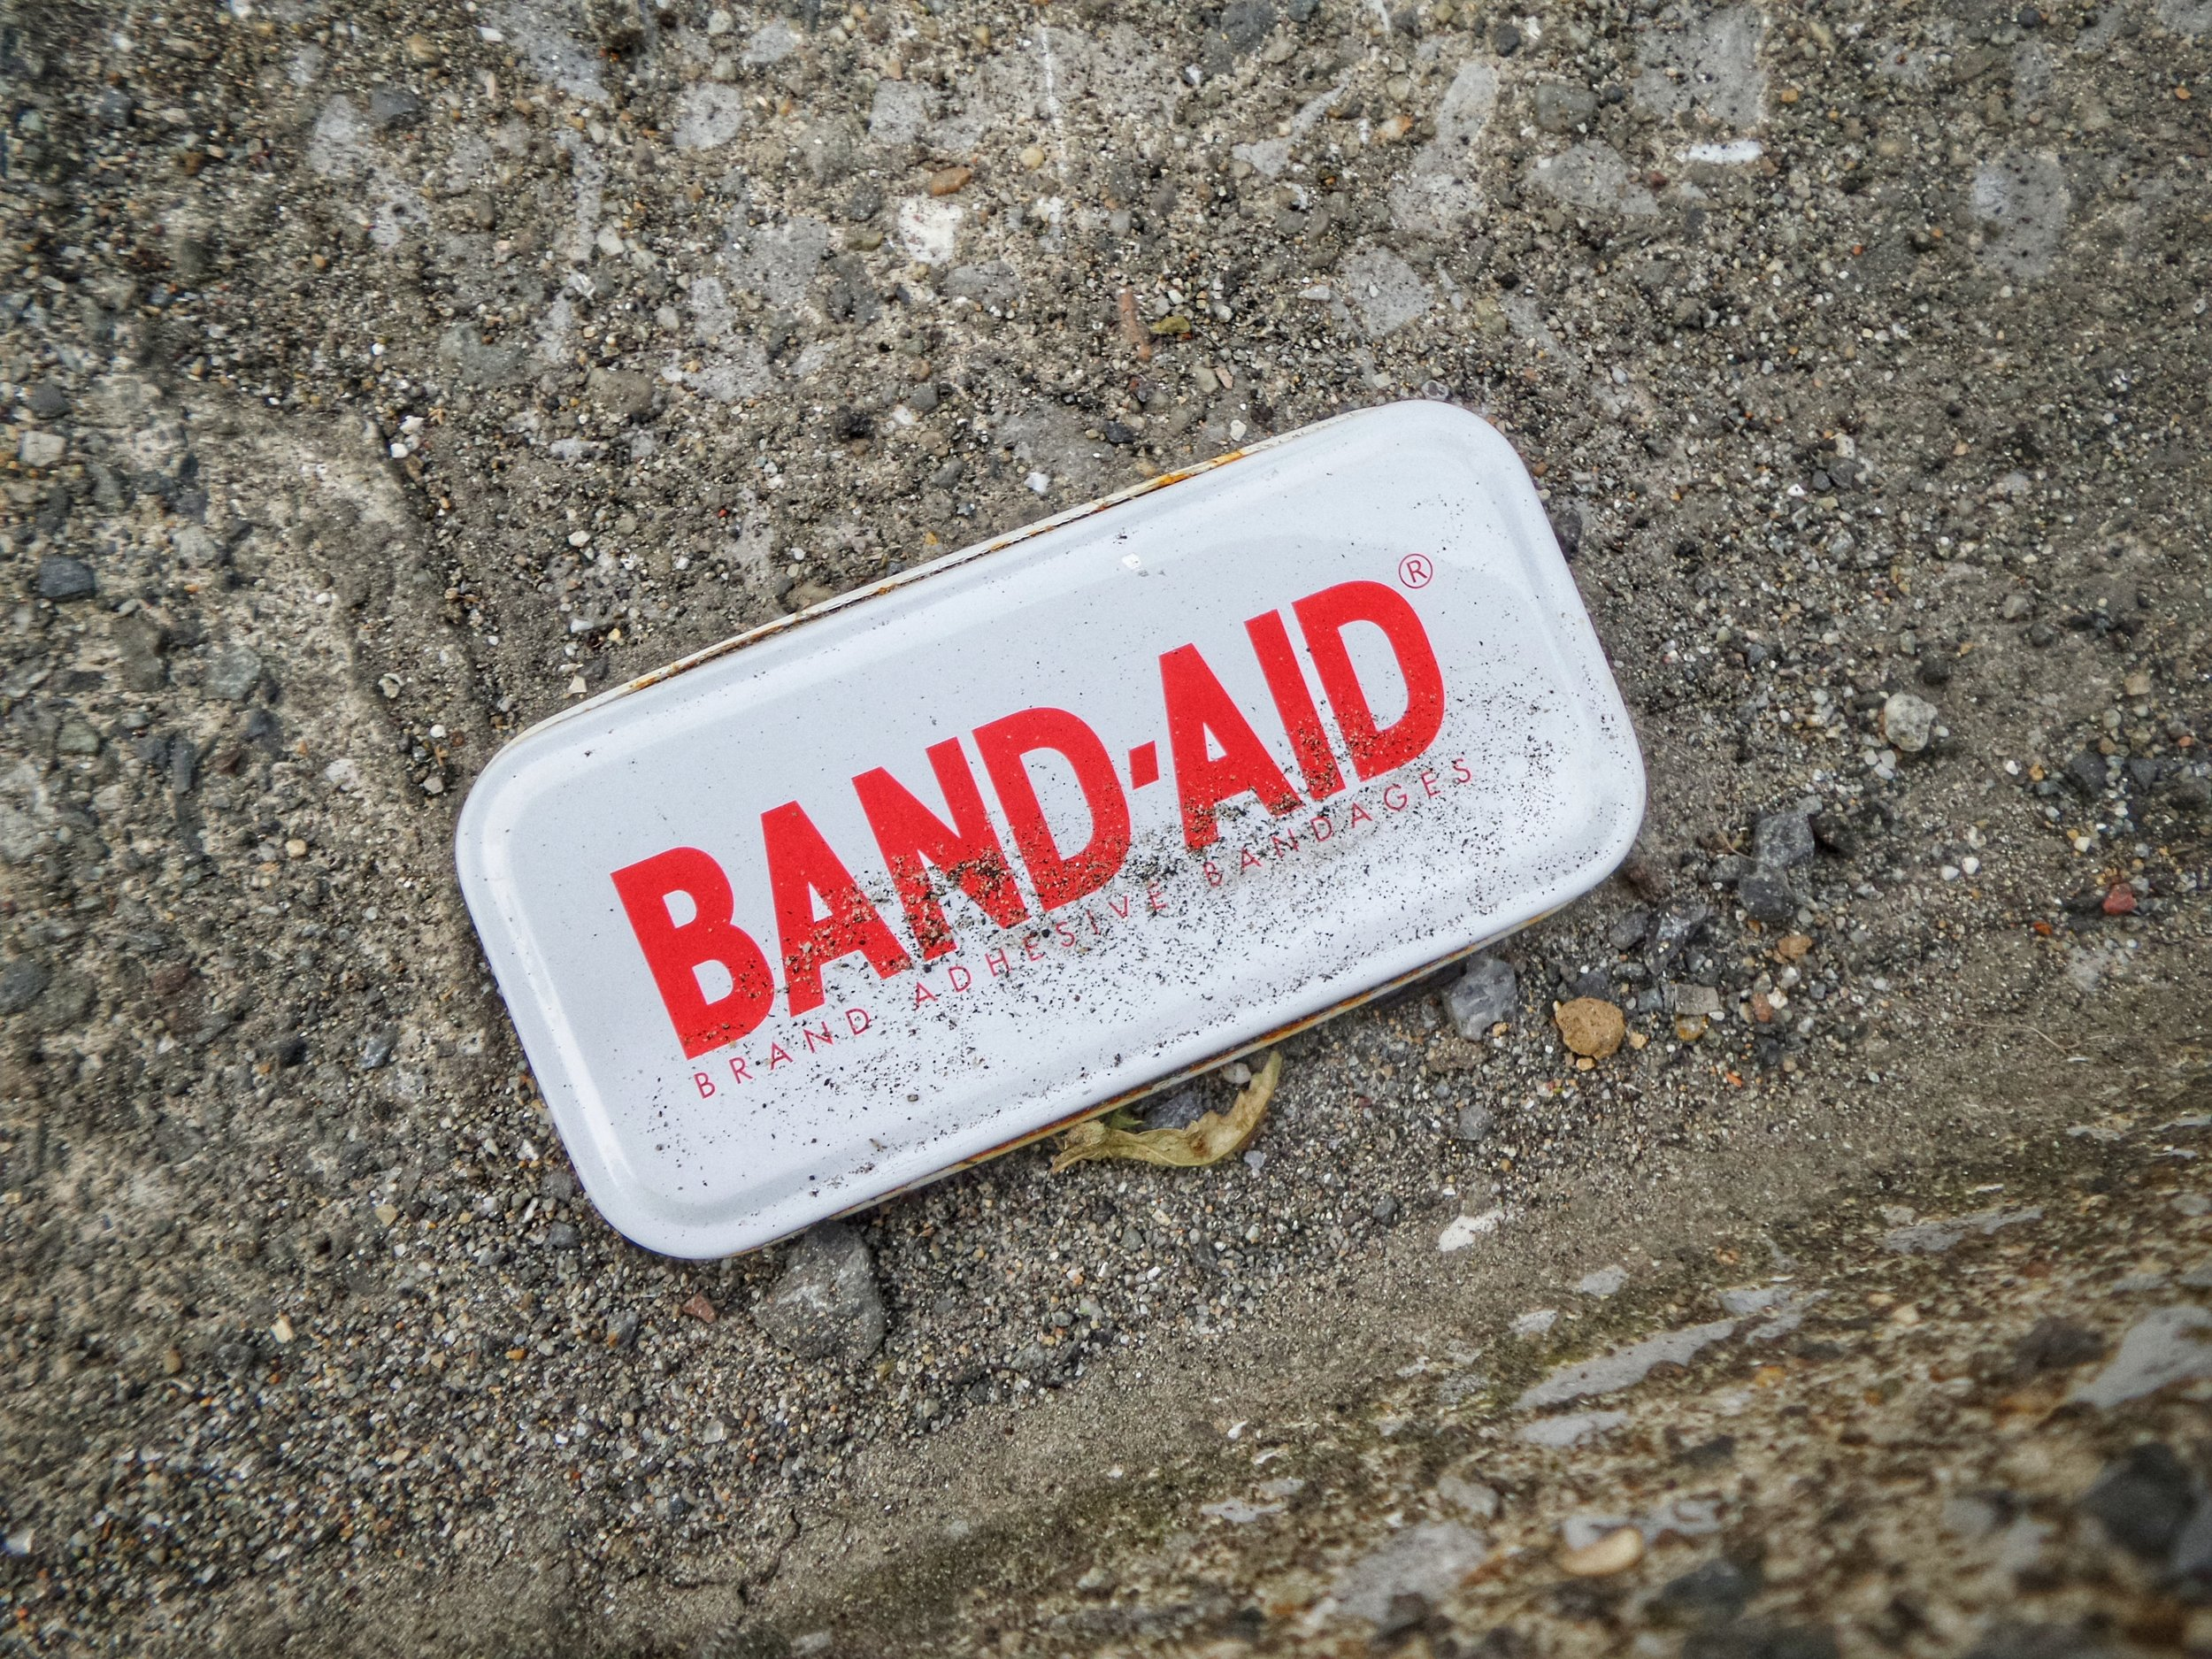 White tin Band-Aid container laying on curb, covered in sand